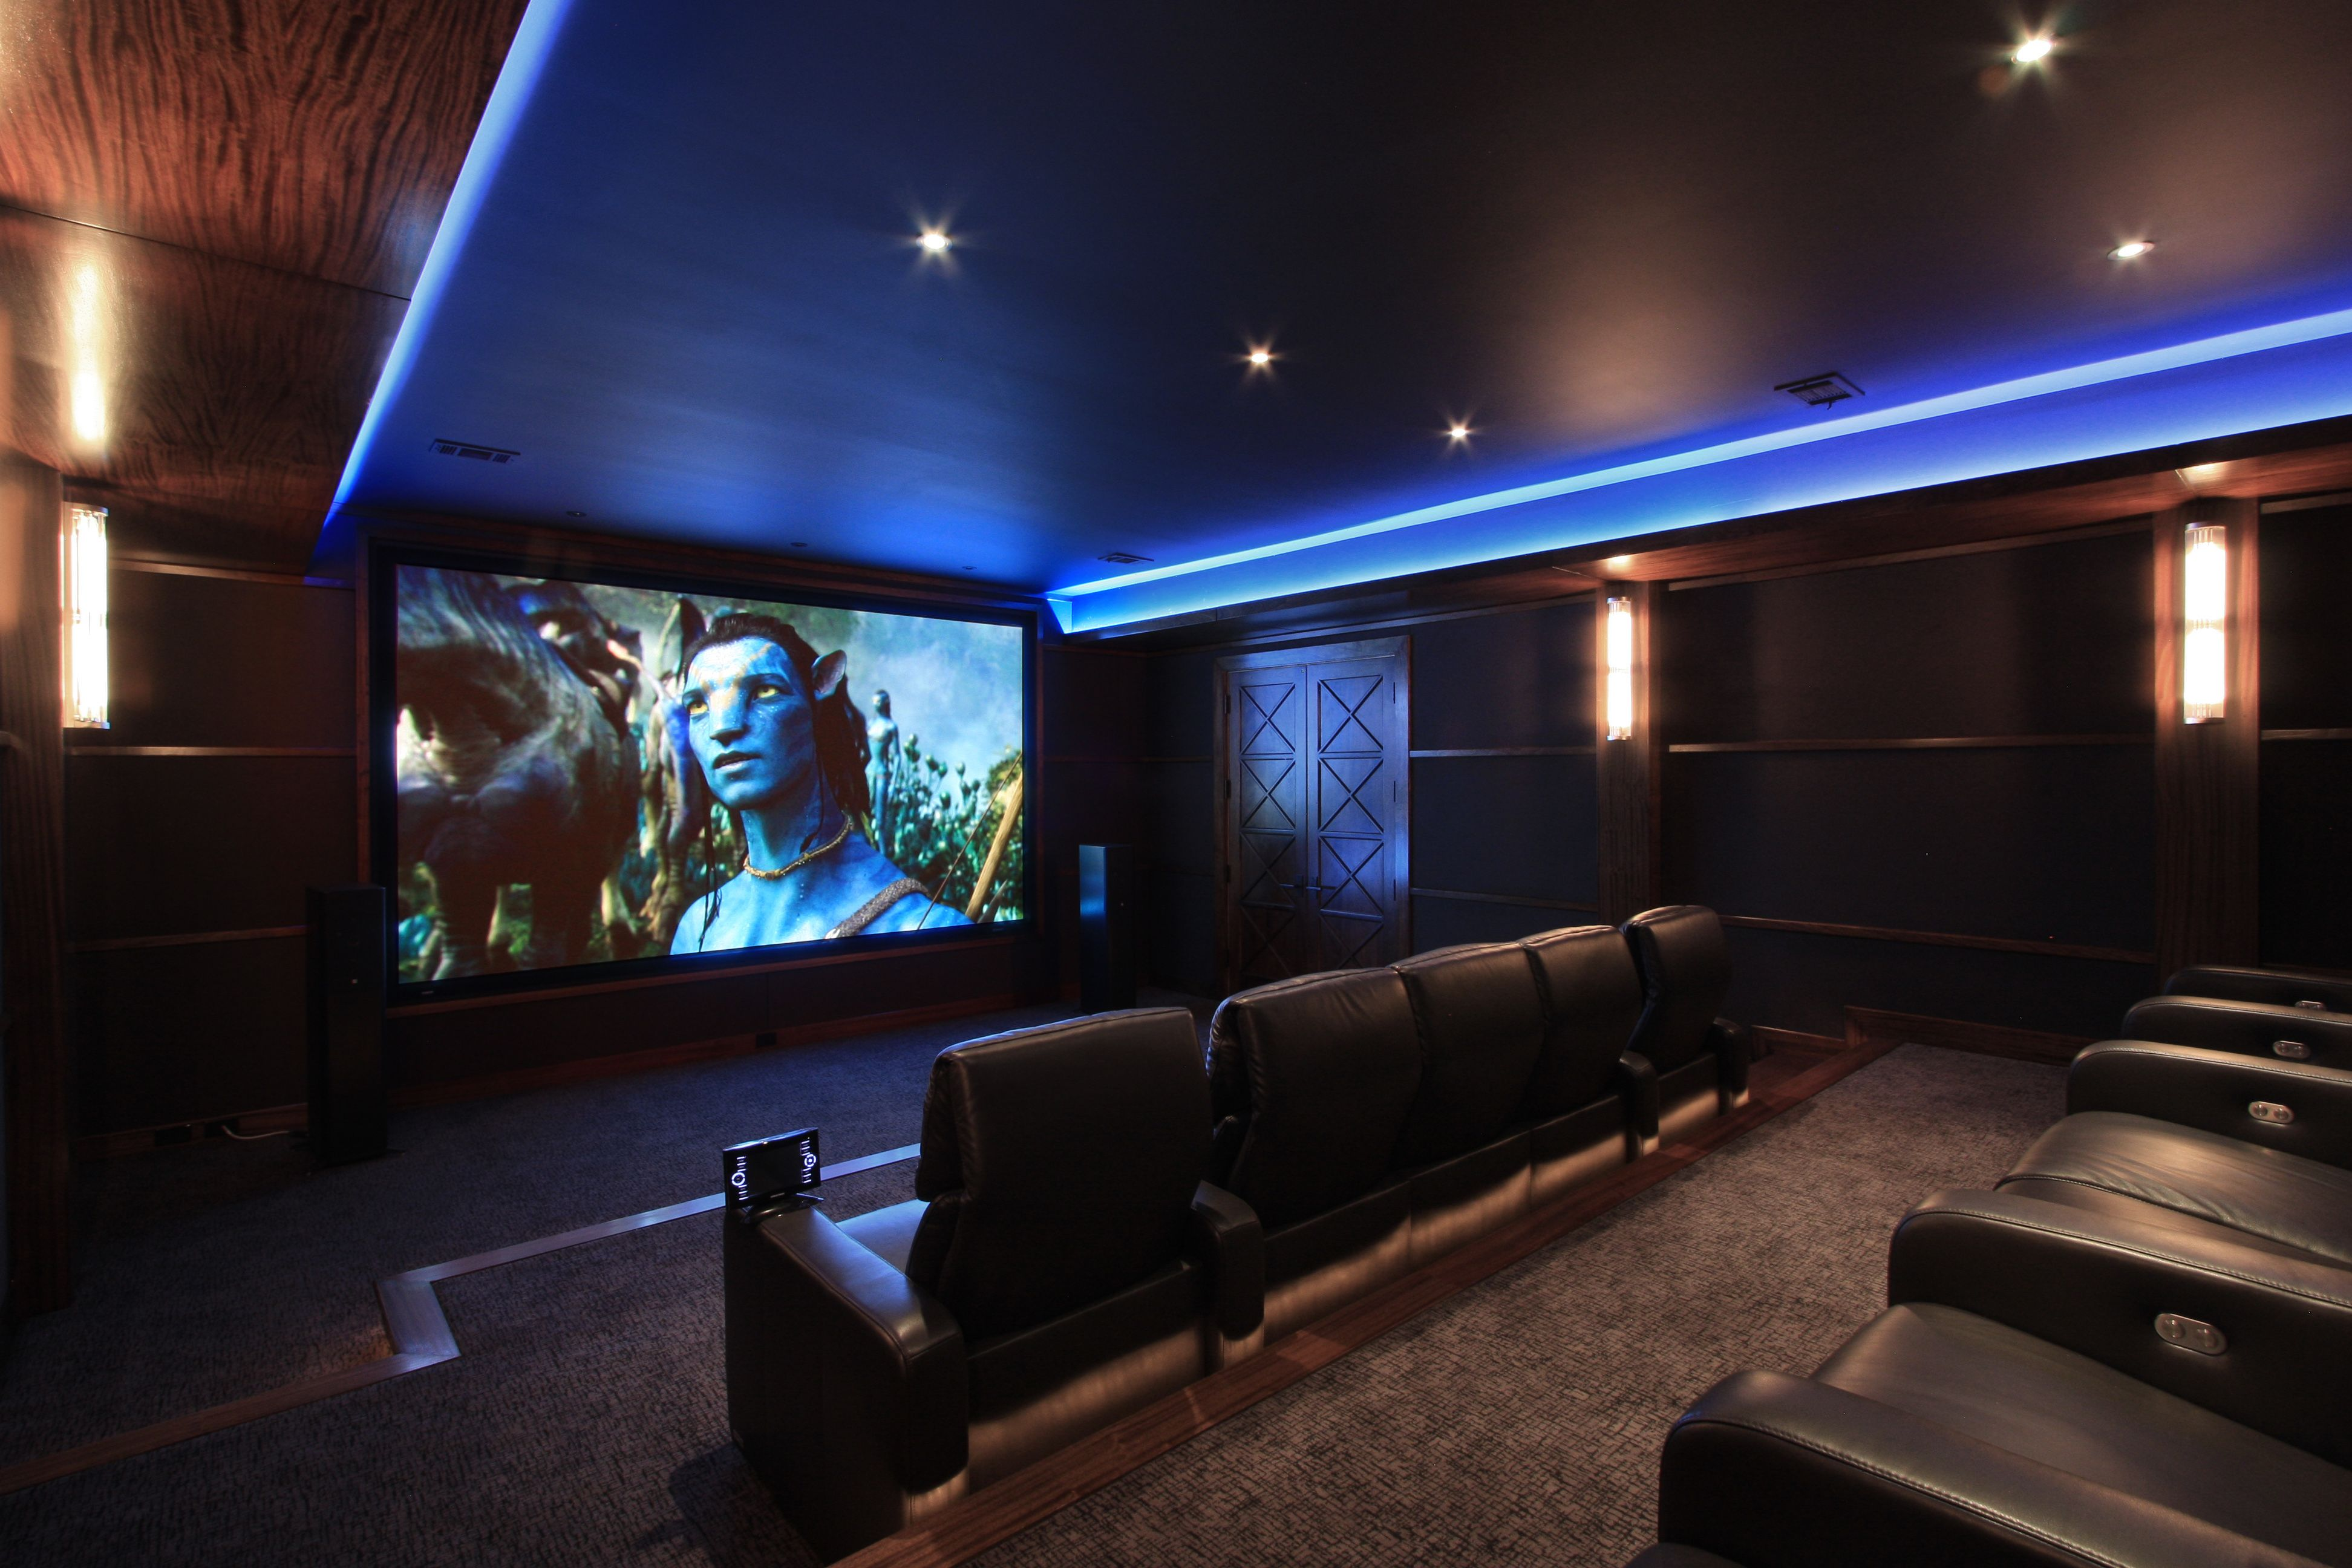 Every Home Should Have A Simple Screening Room For Family Movie Night